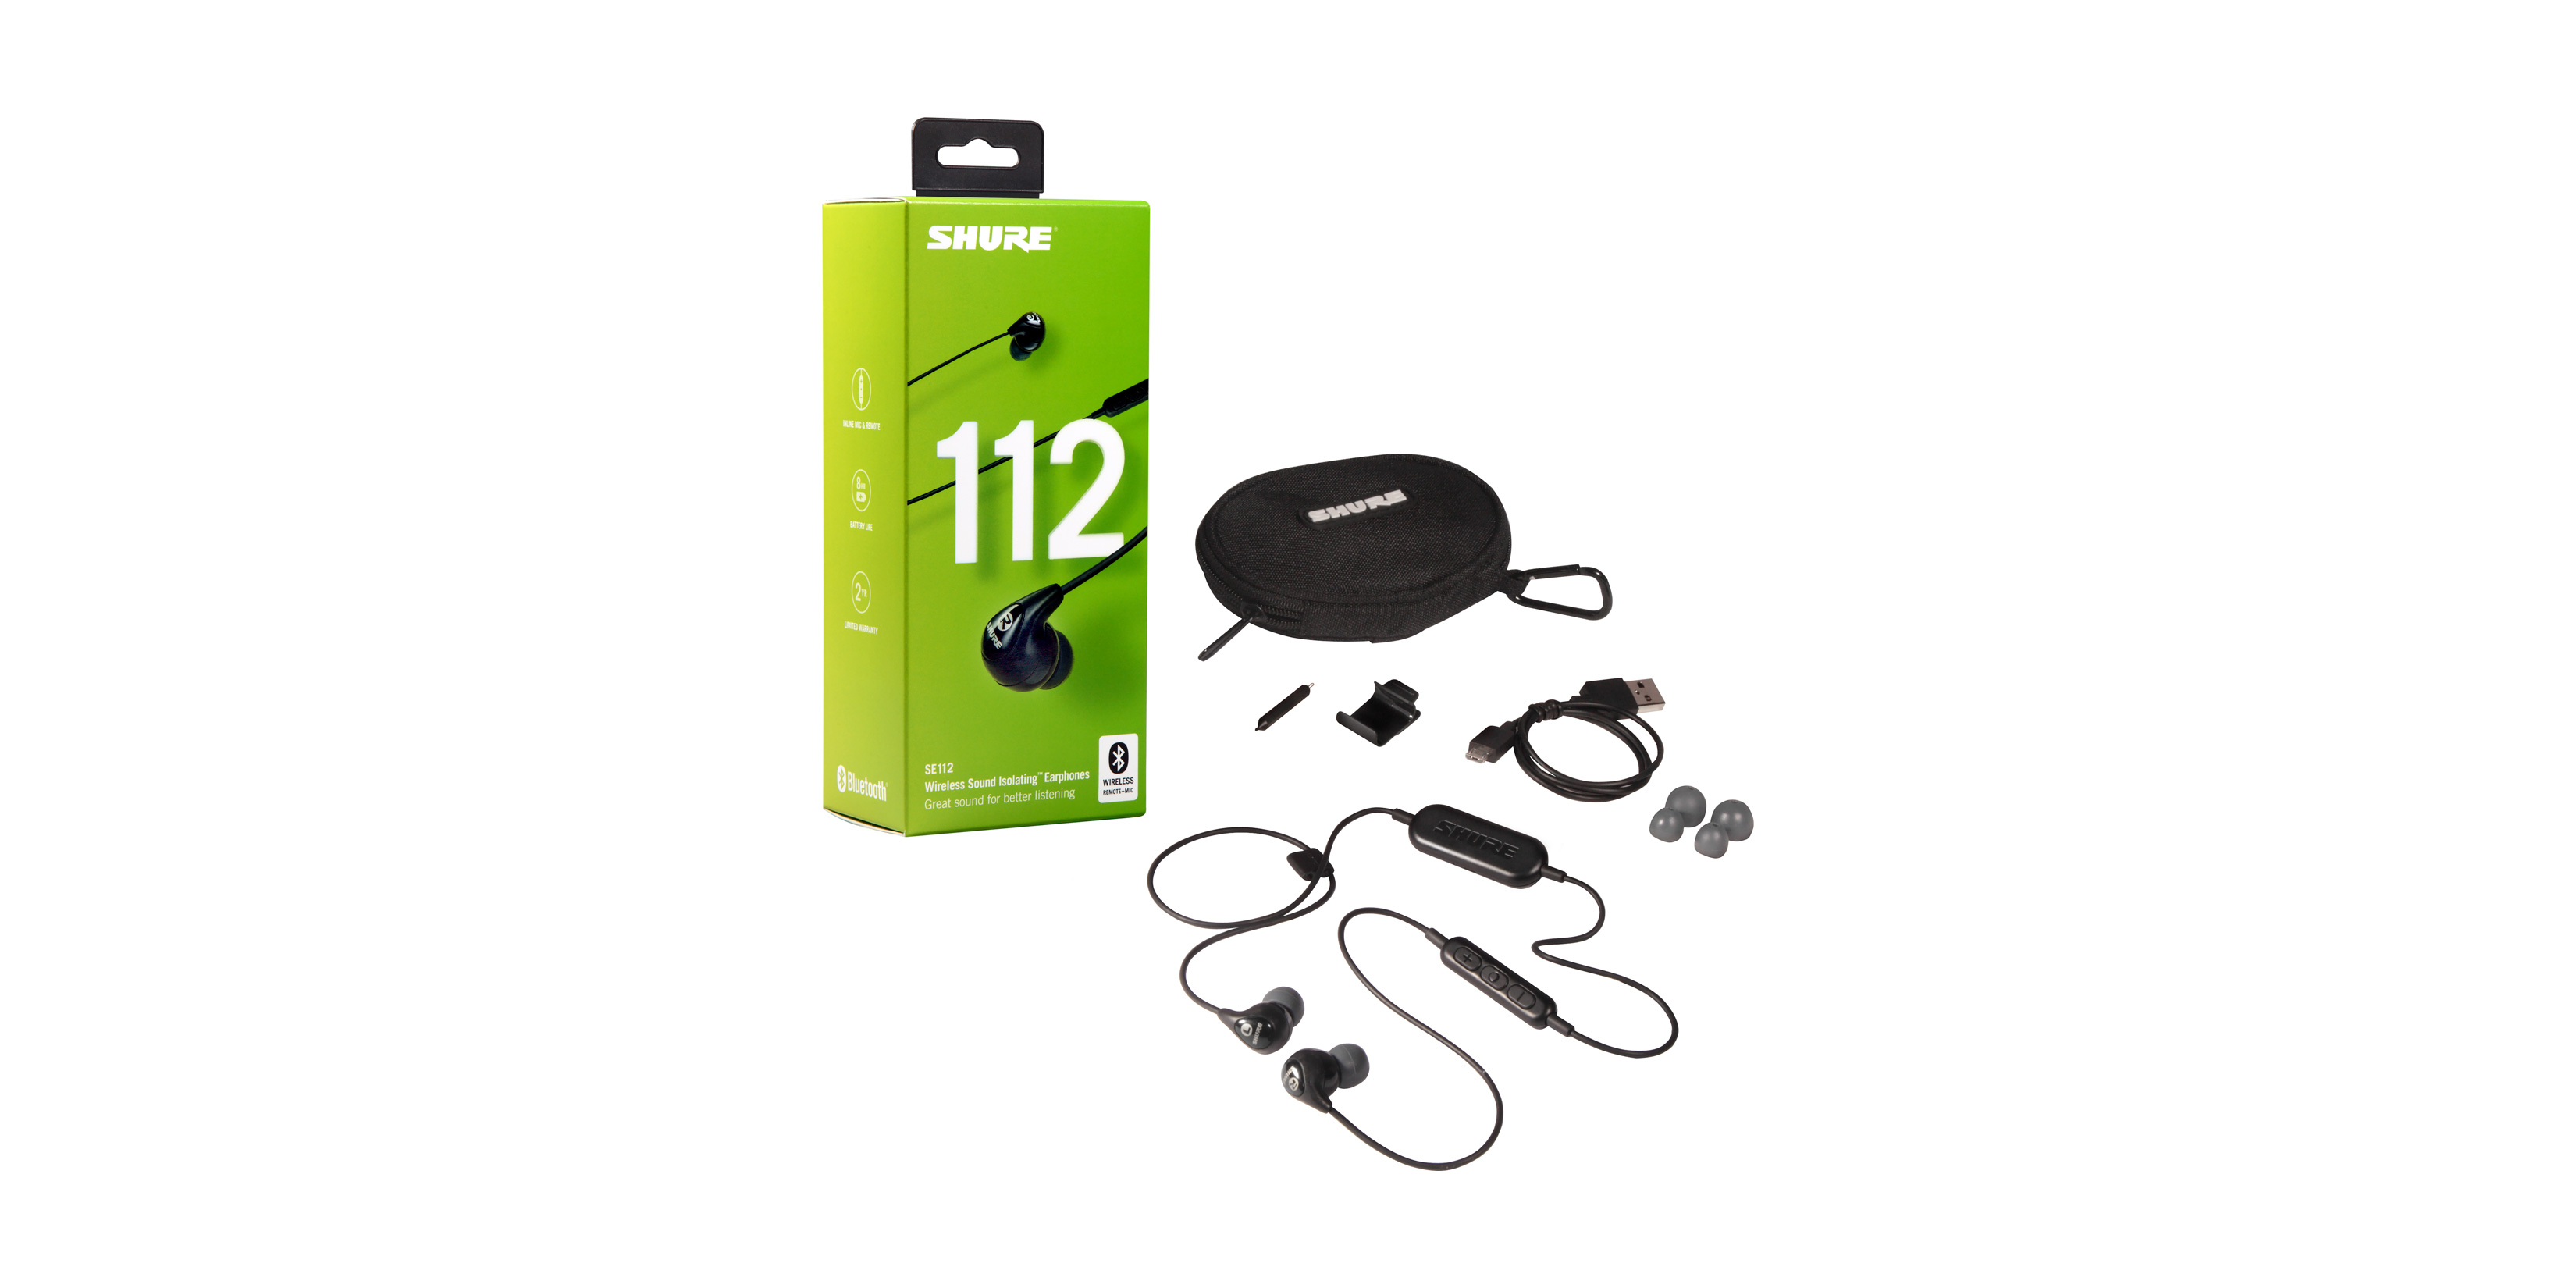 Shure SE112 Sound Isolating™ Earphones